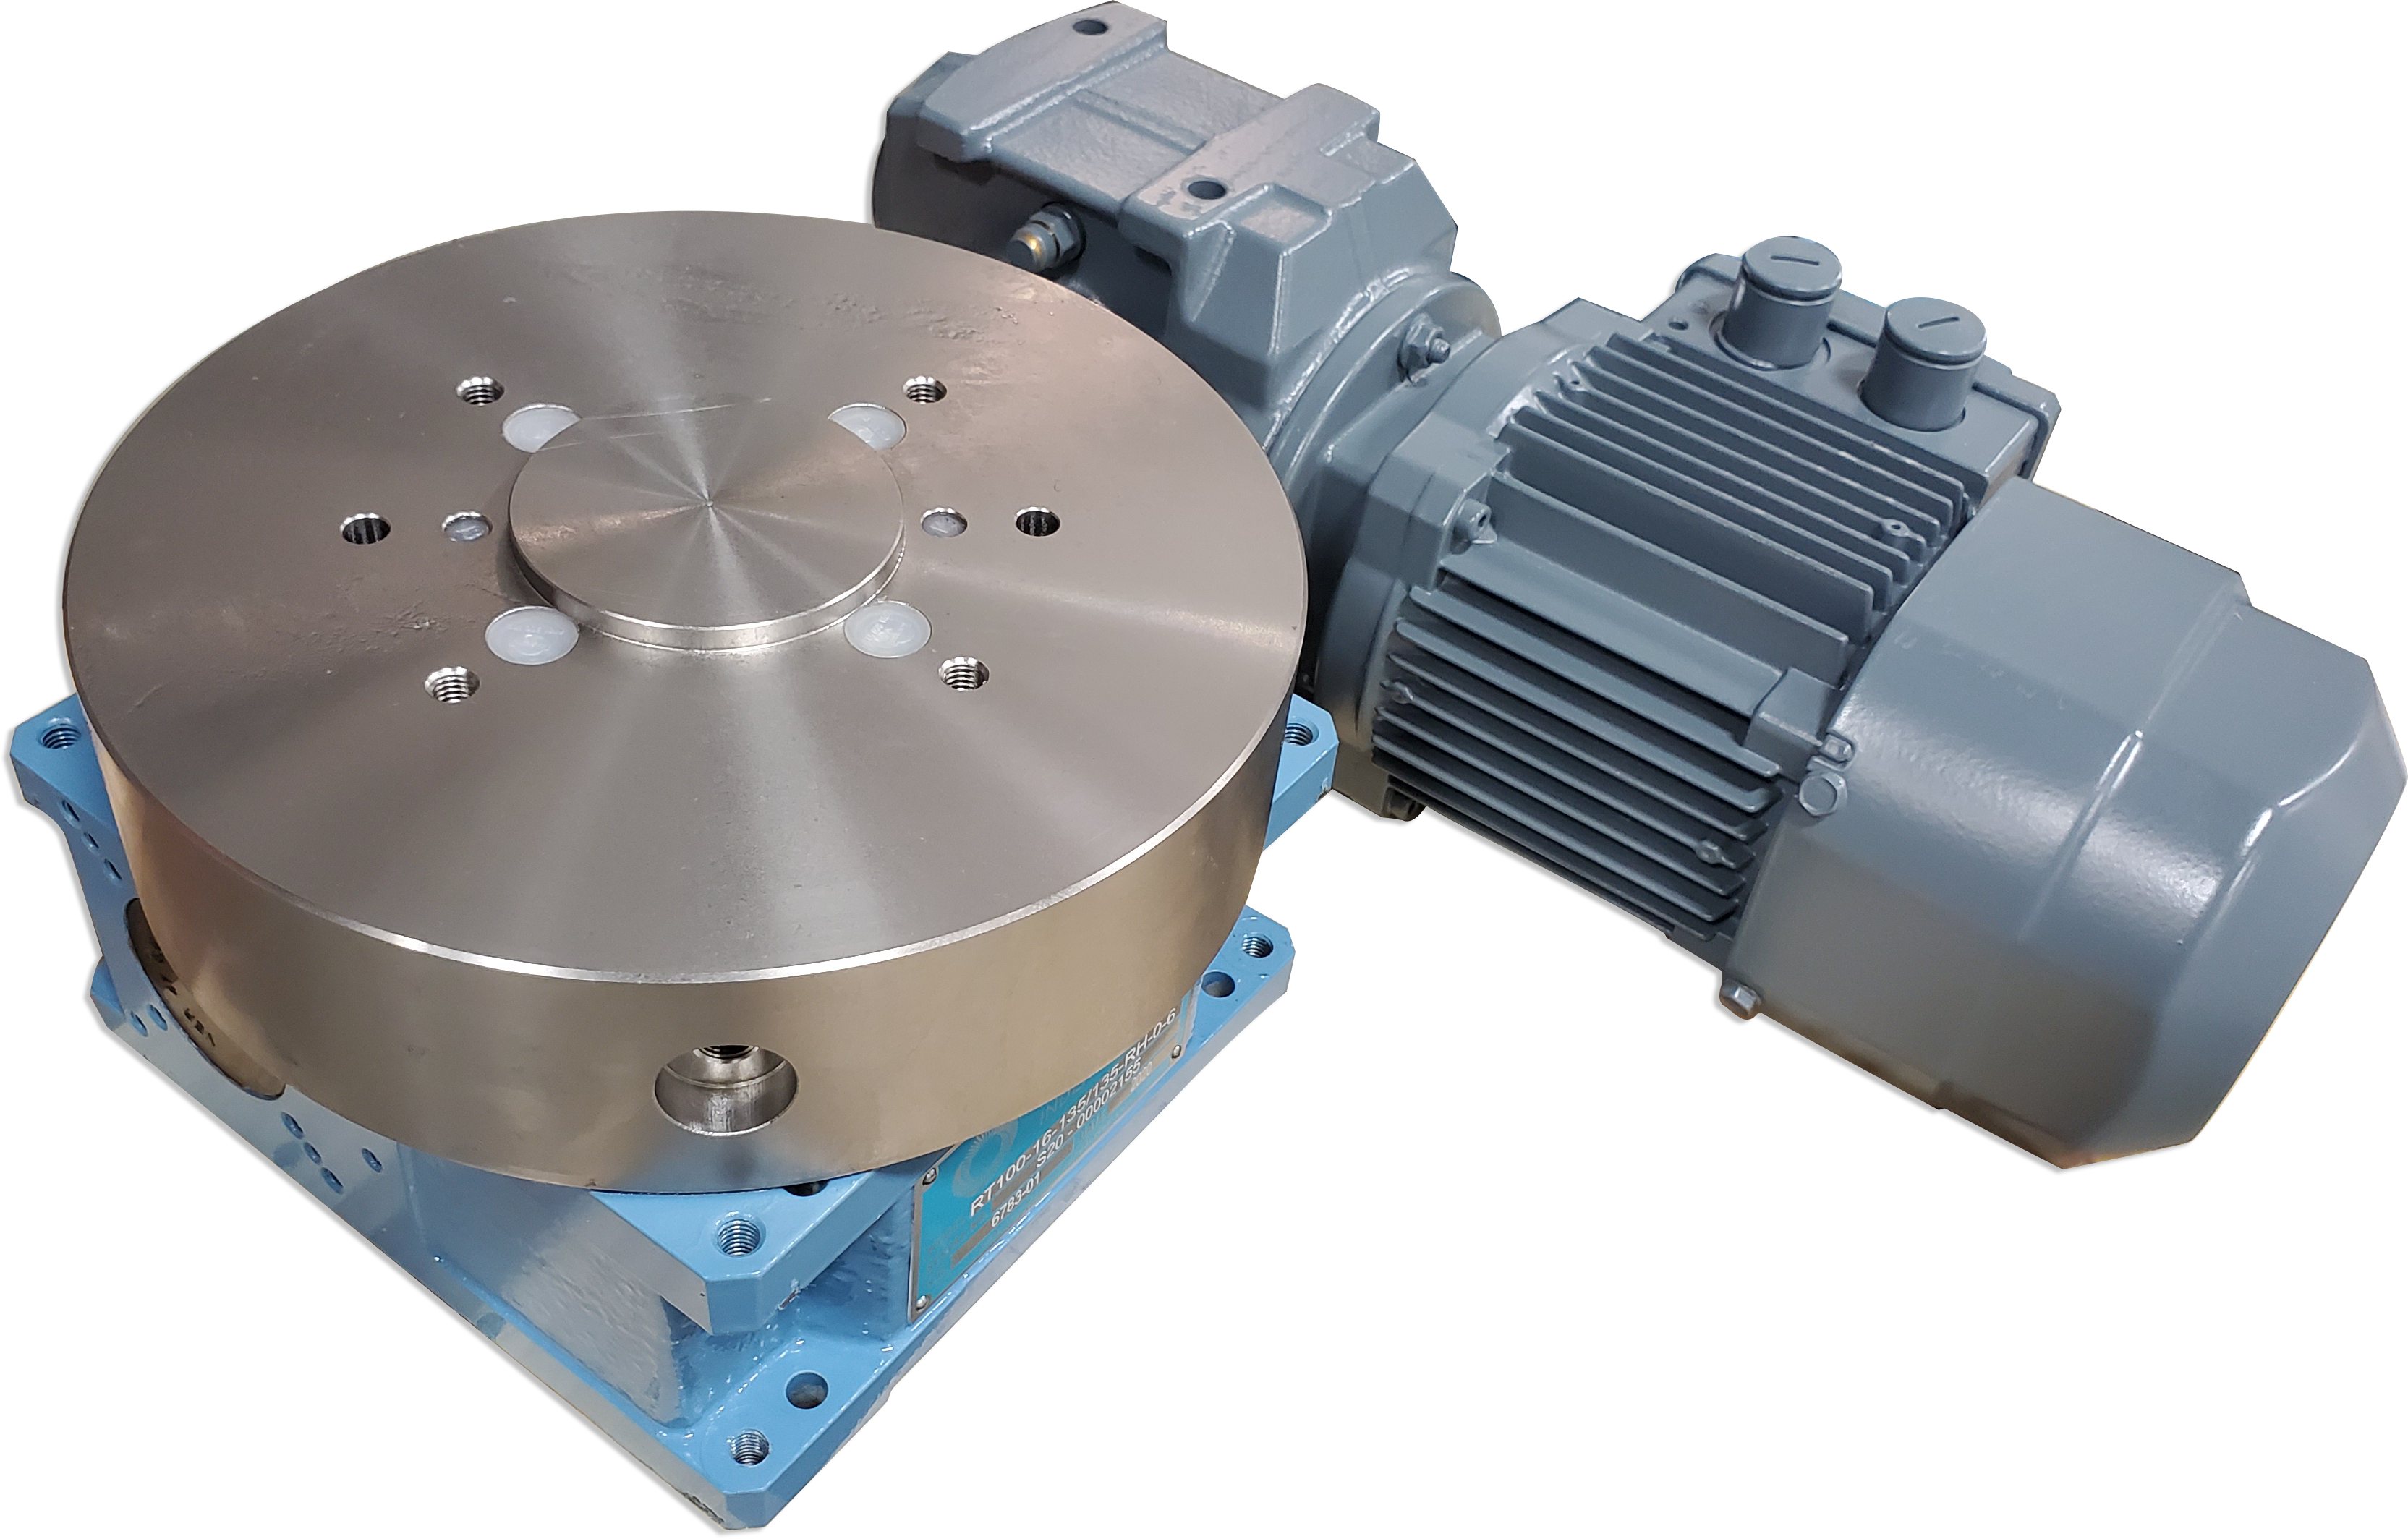 sealed rt100 rotary indexer